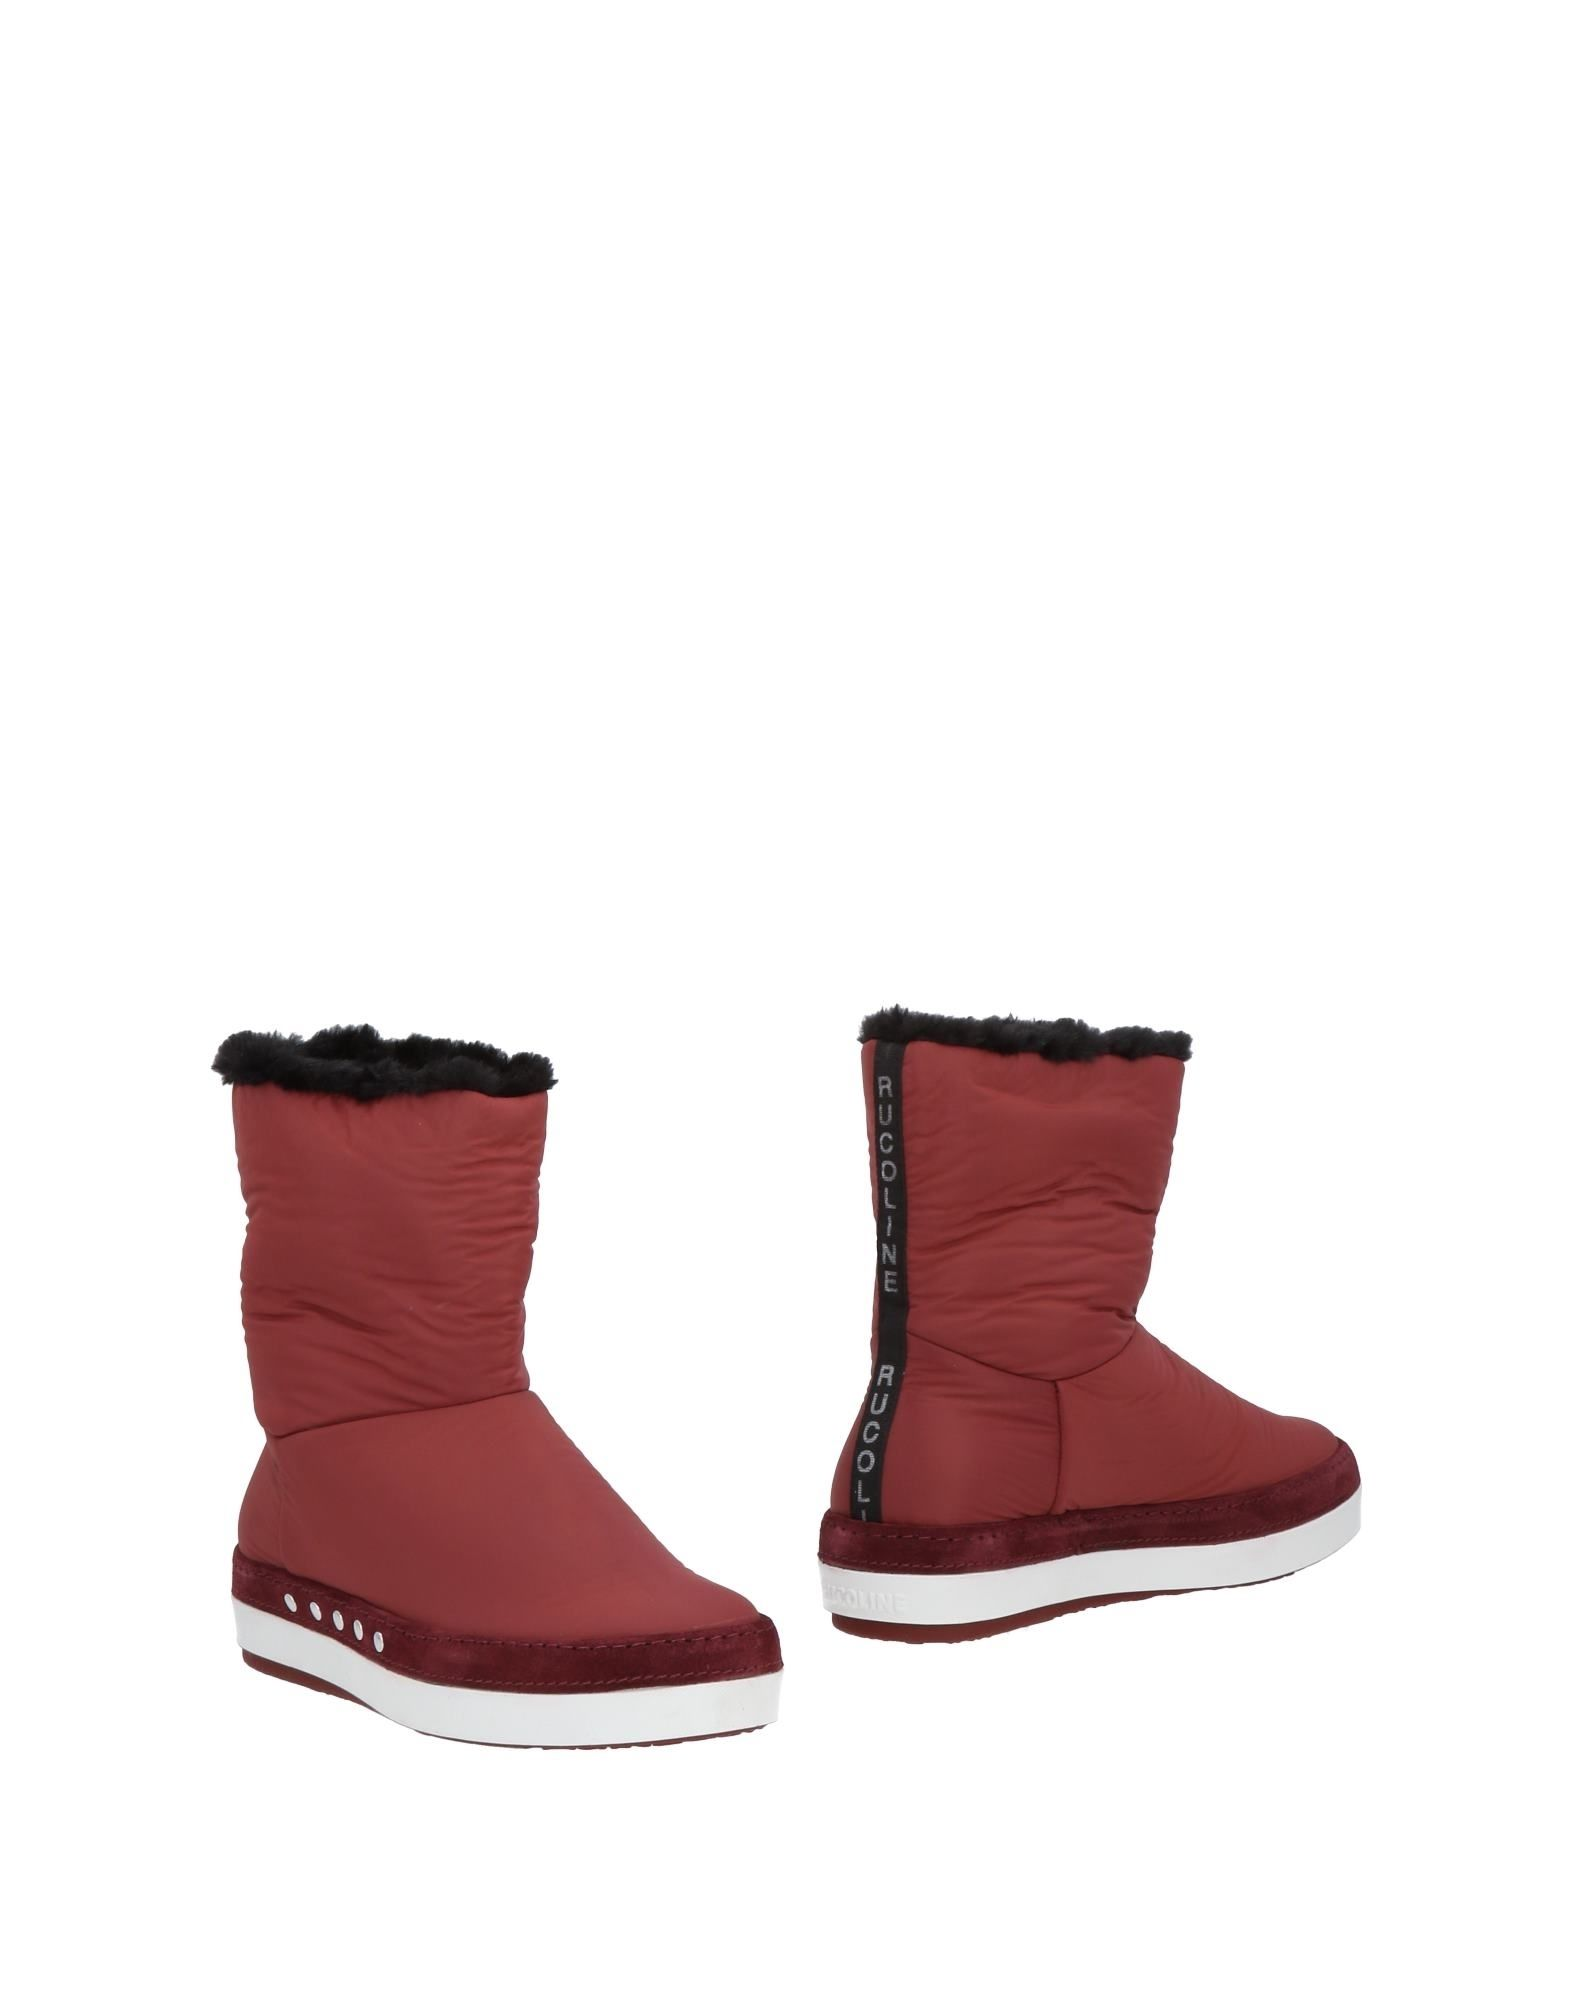 Ruco Line Ankle Boot Ankle - Women Ruco Line Ankle Boot Boots online on  Australia - 11496854KS bb98da